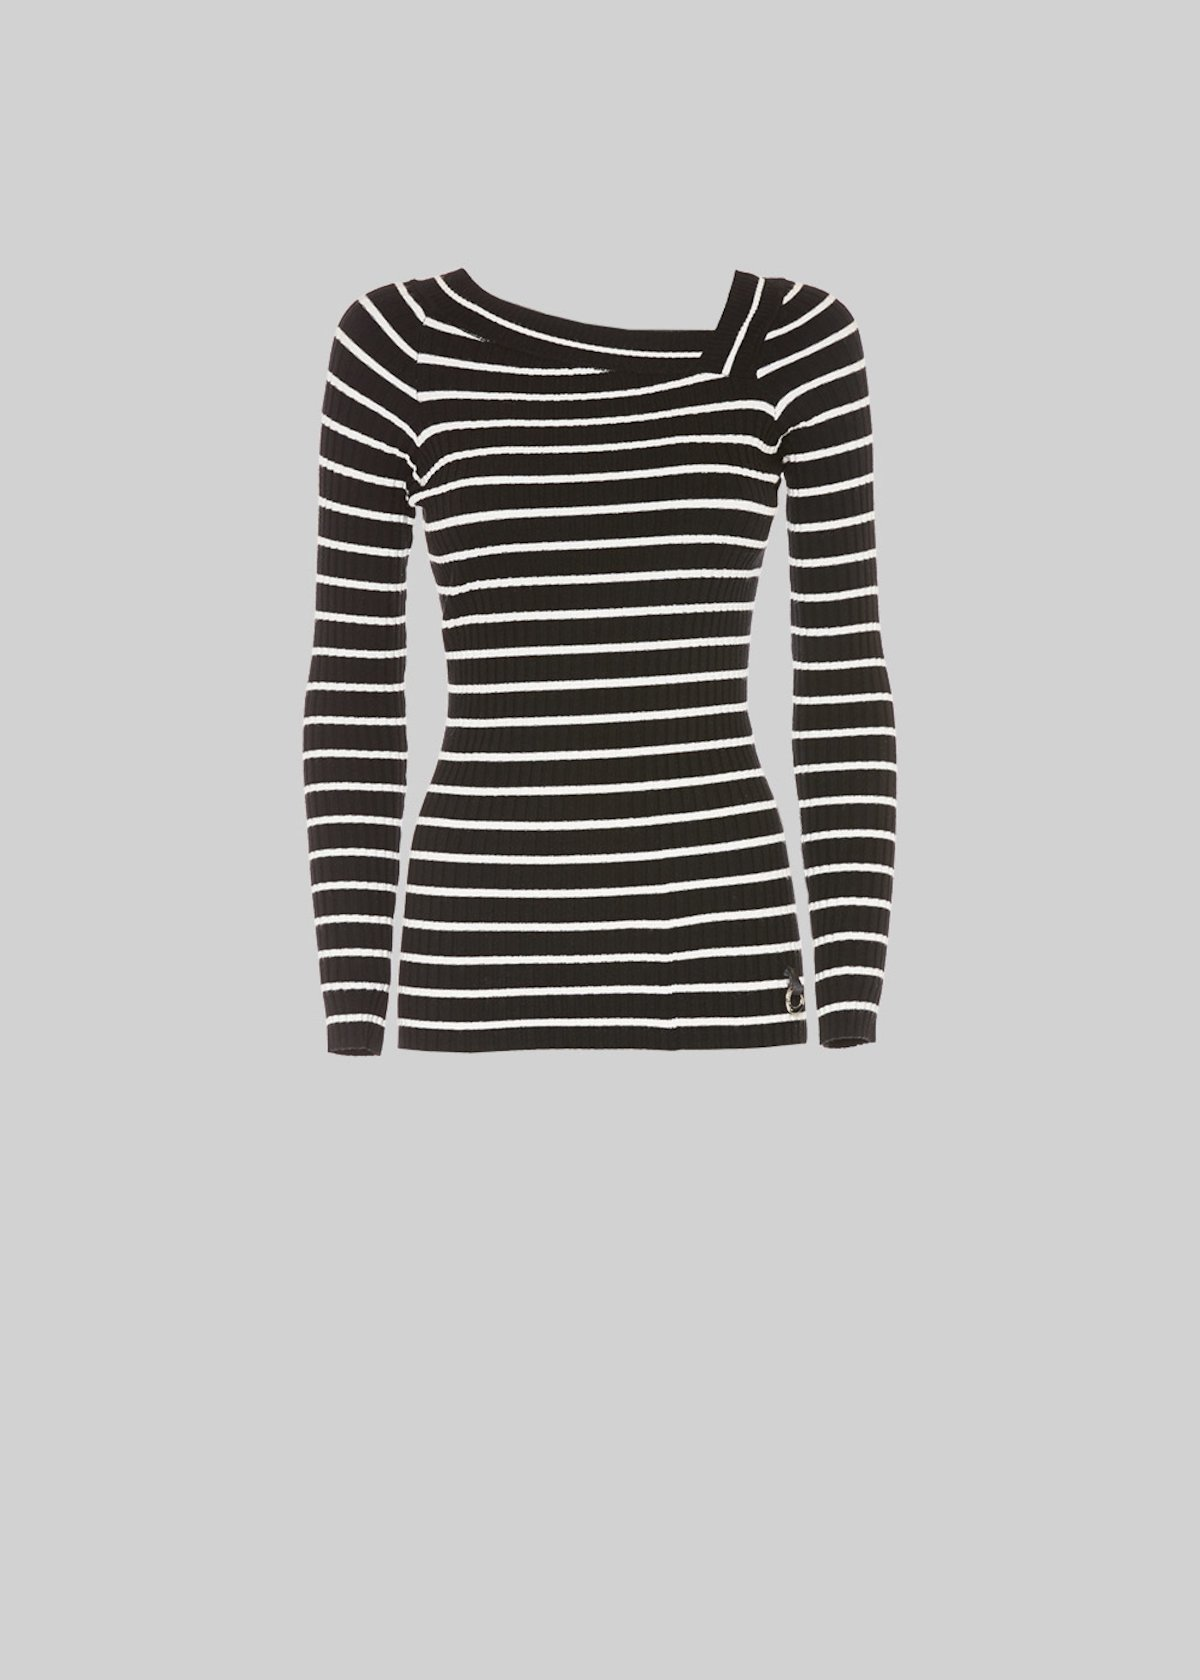 Monkey stripe fantasy sweater with asymmetrical collar